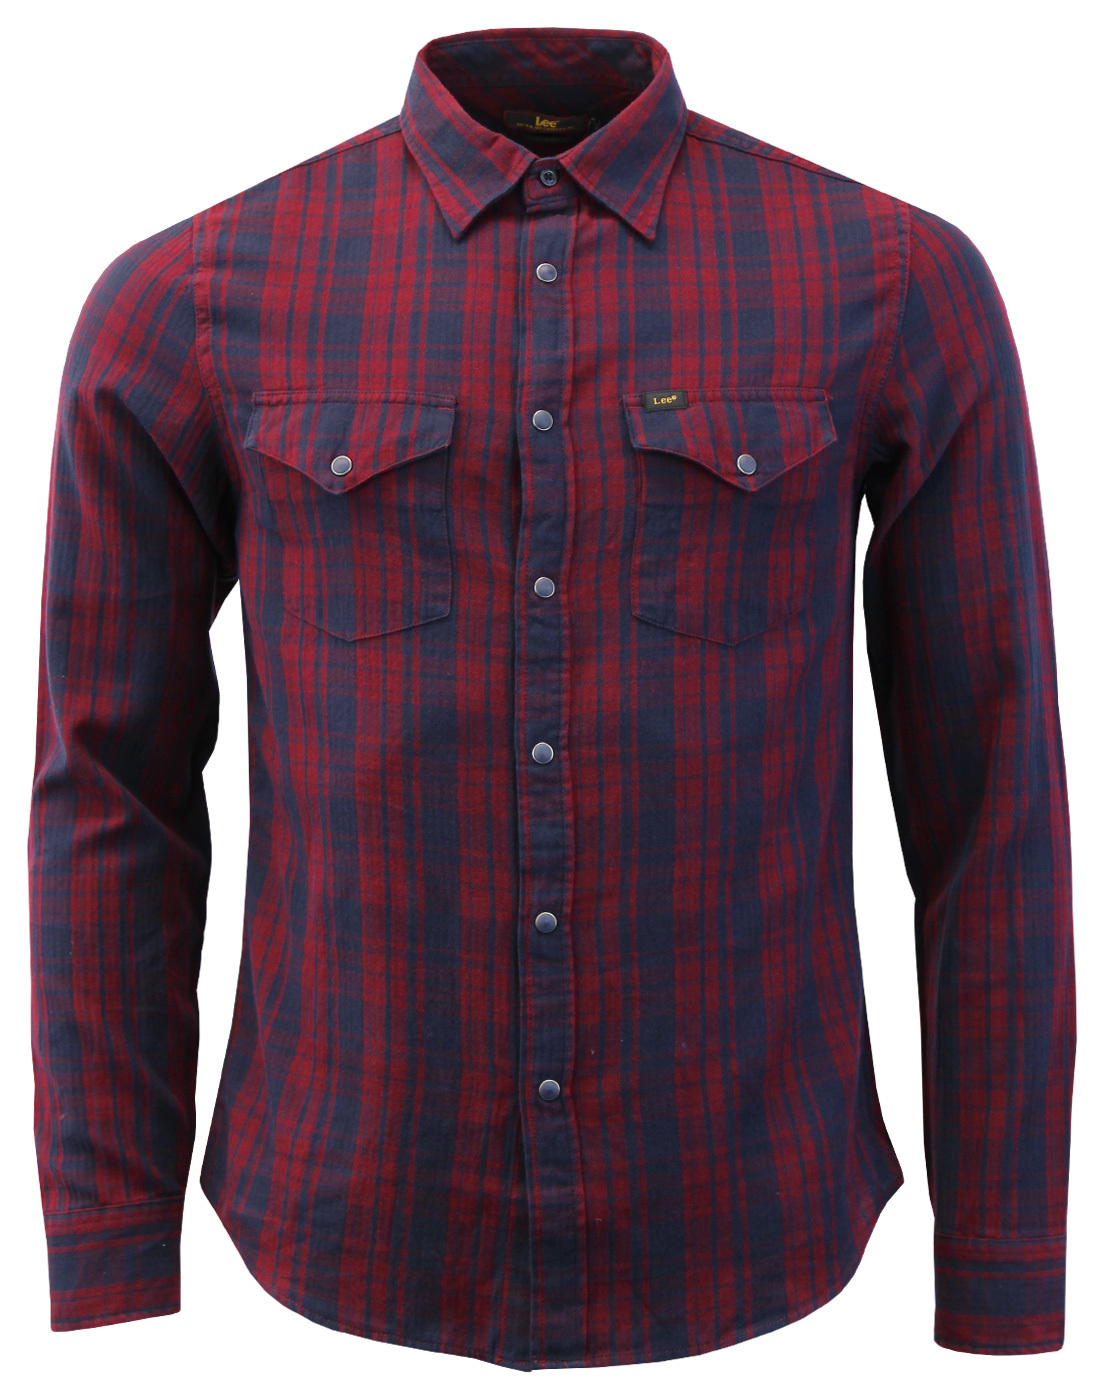 LEE Retro Mod Herringbone Check Western Shirt (TP)